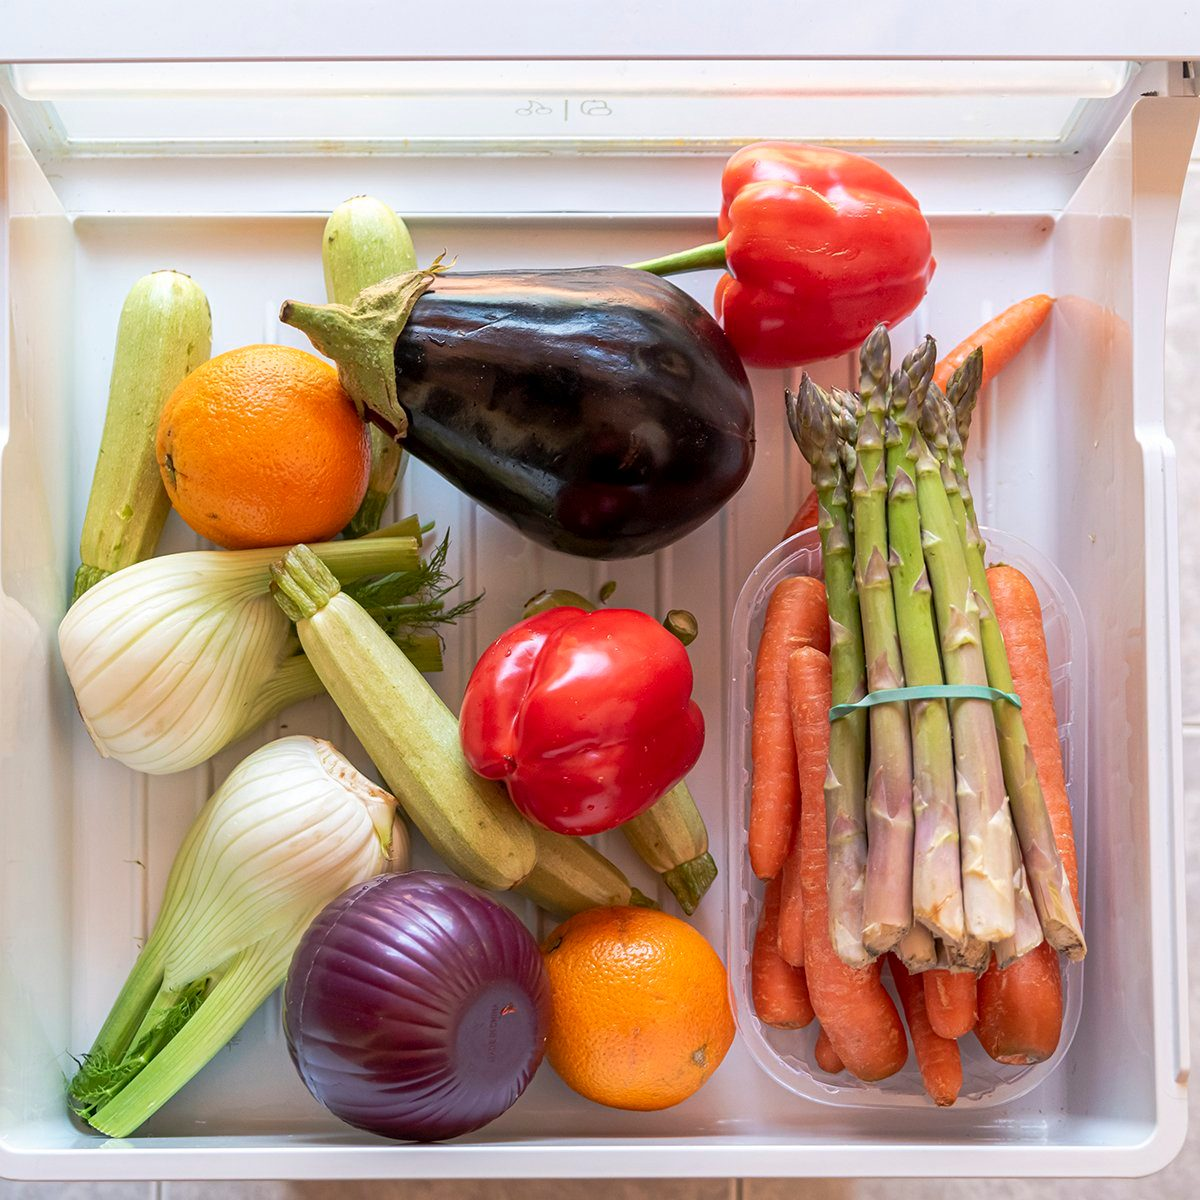 Produce in fridge drawer